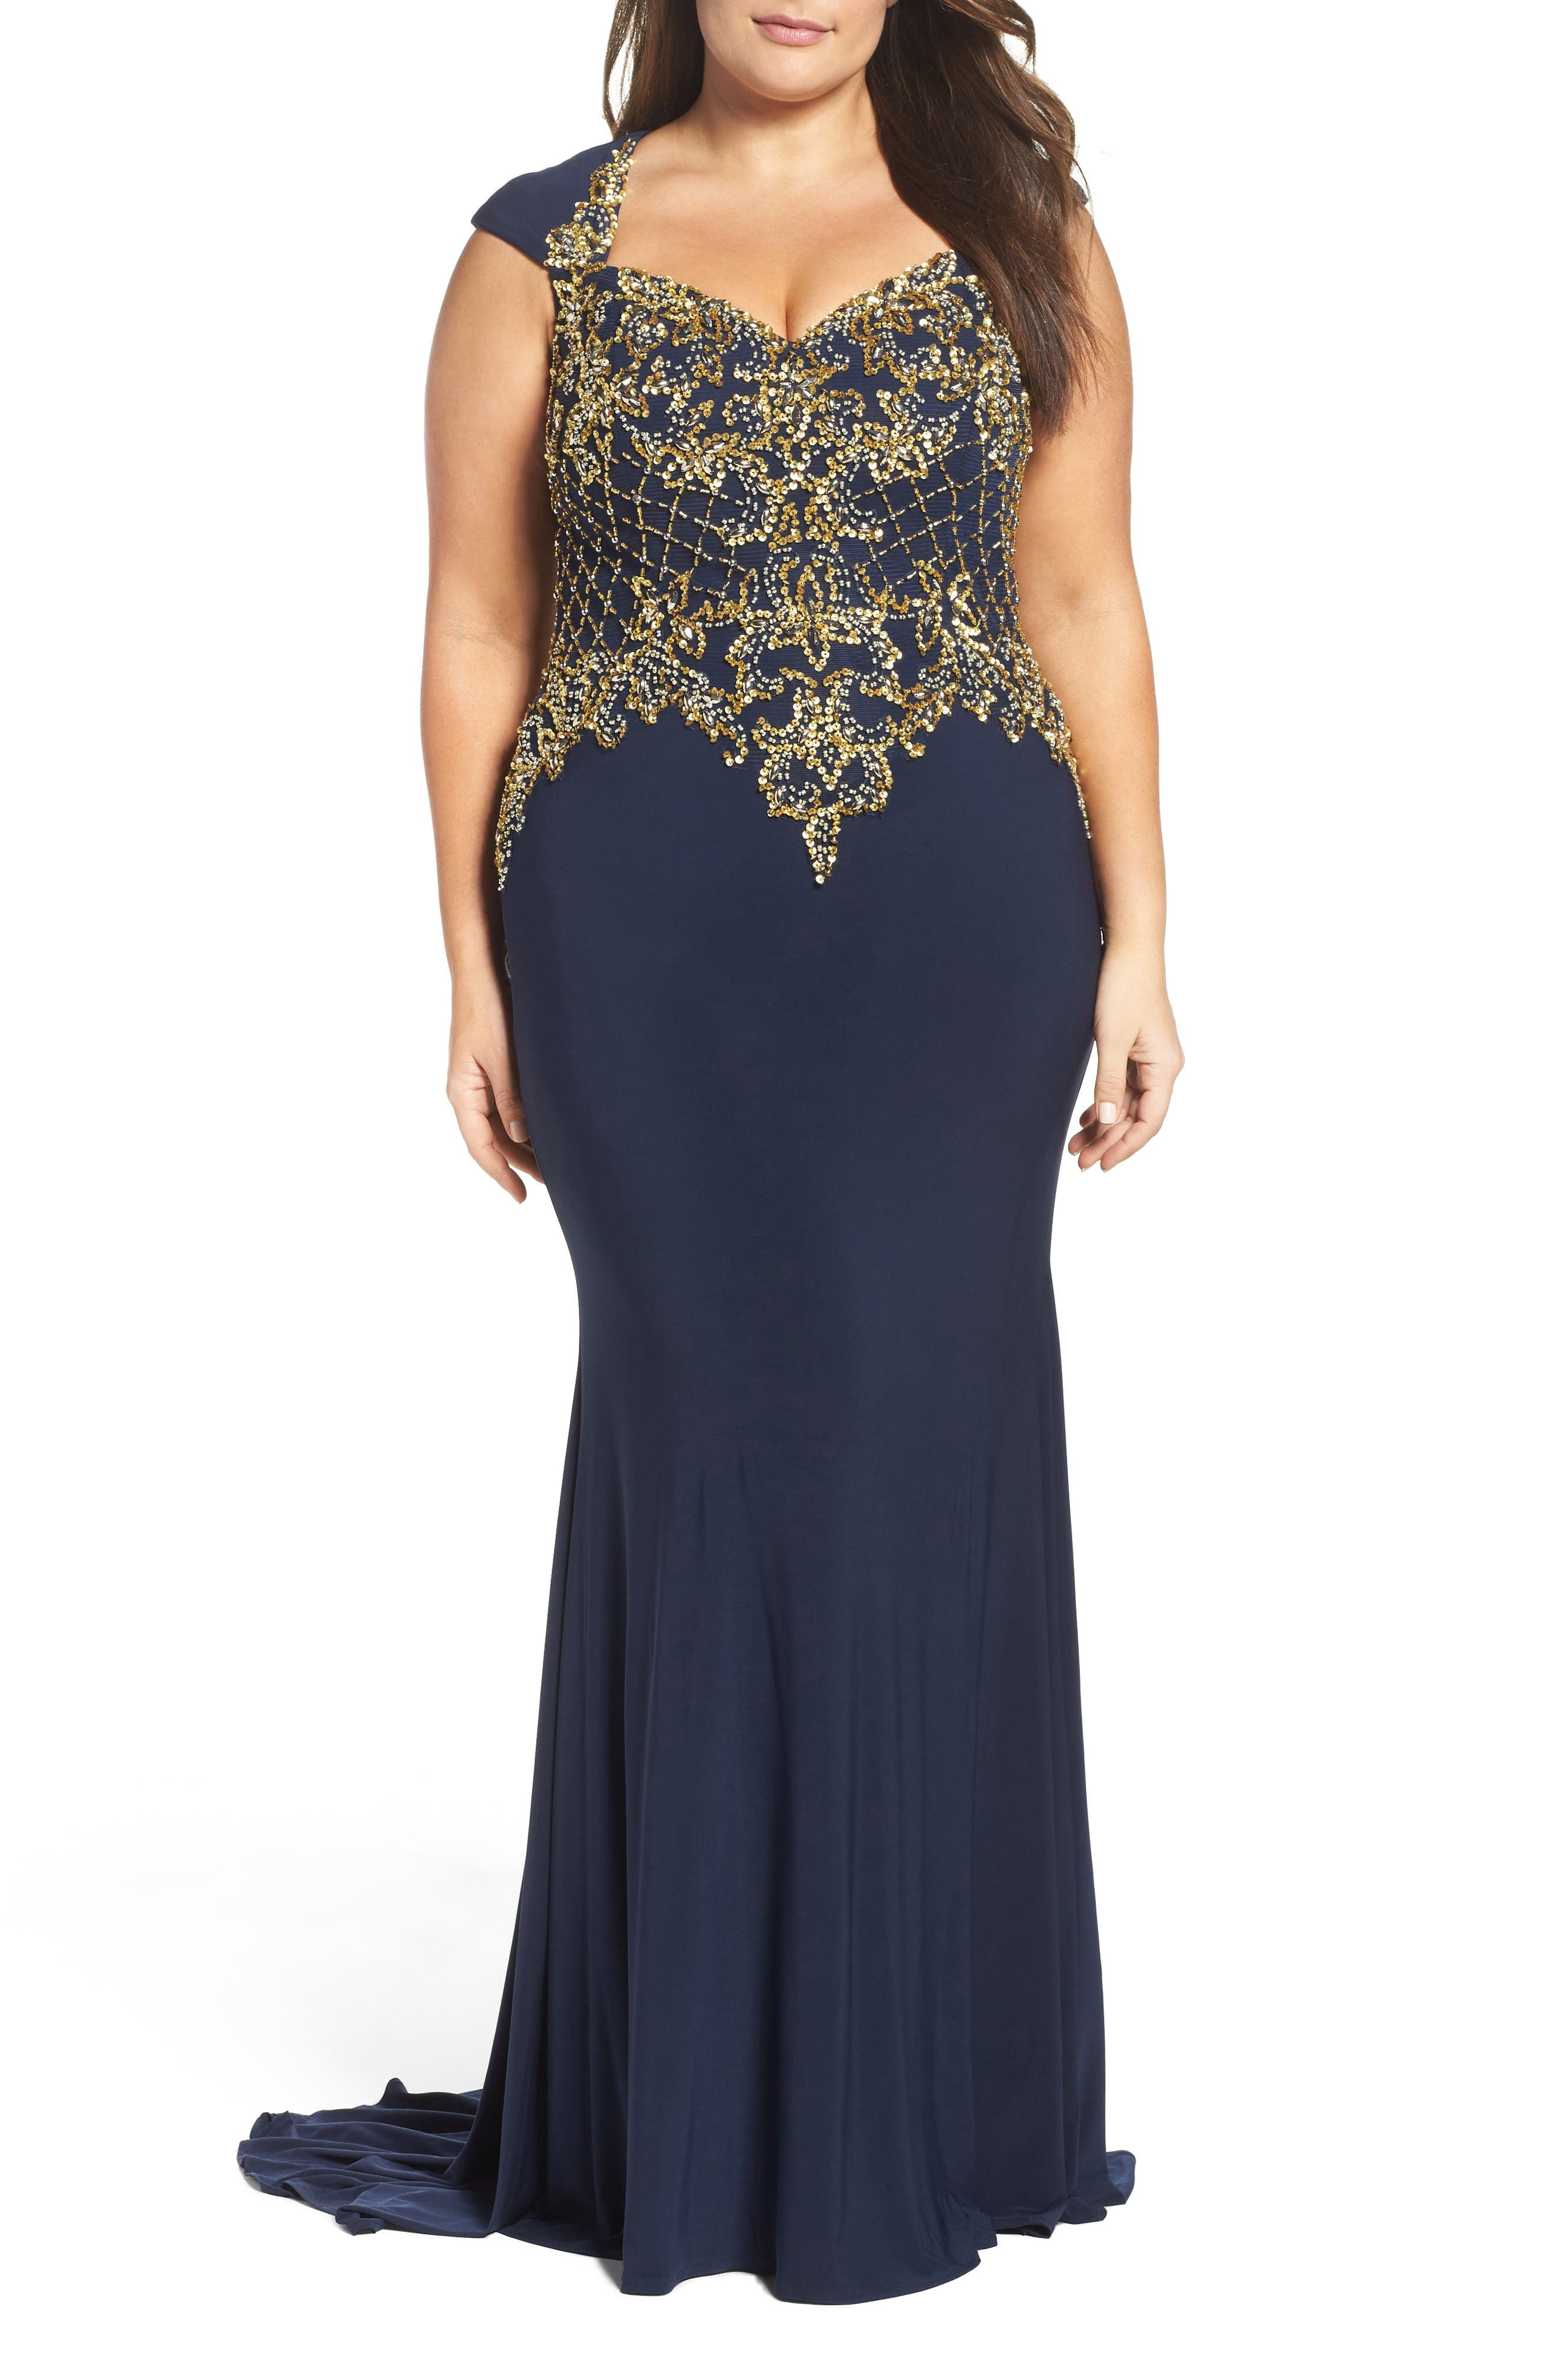 Main Image - Mac Duggal Embellished Jersey Mermaid Gown (Plus Size)